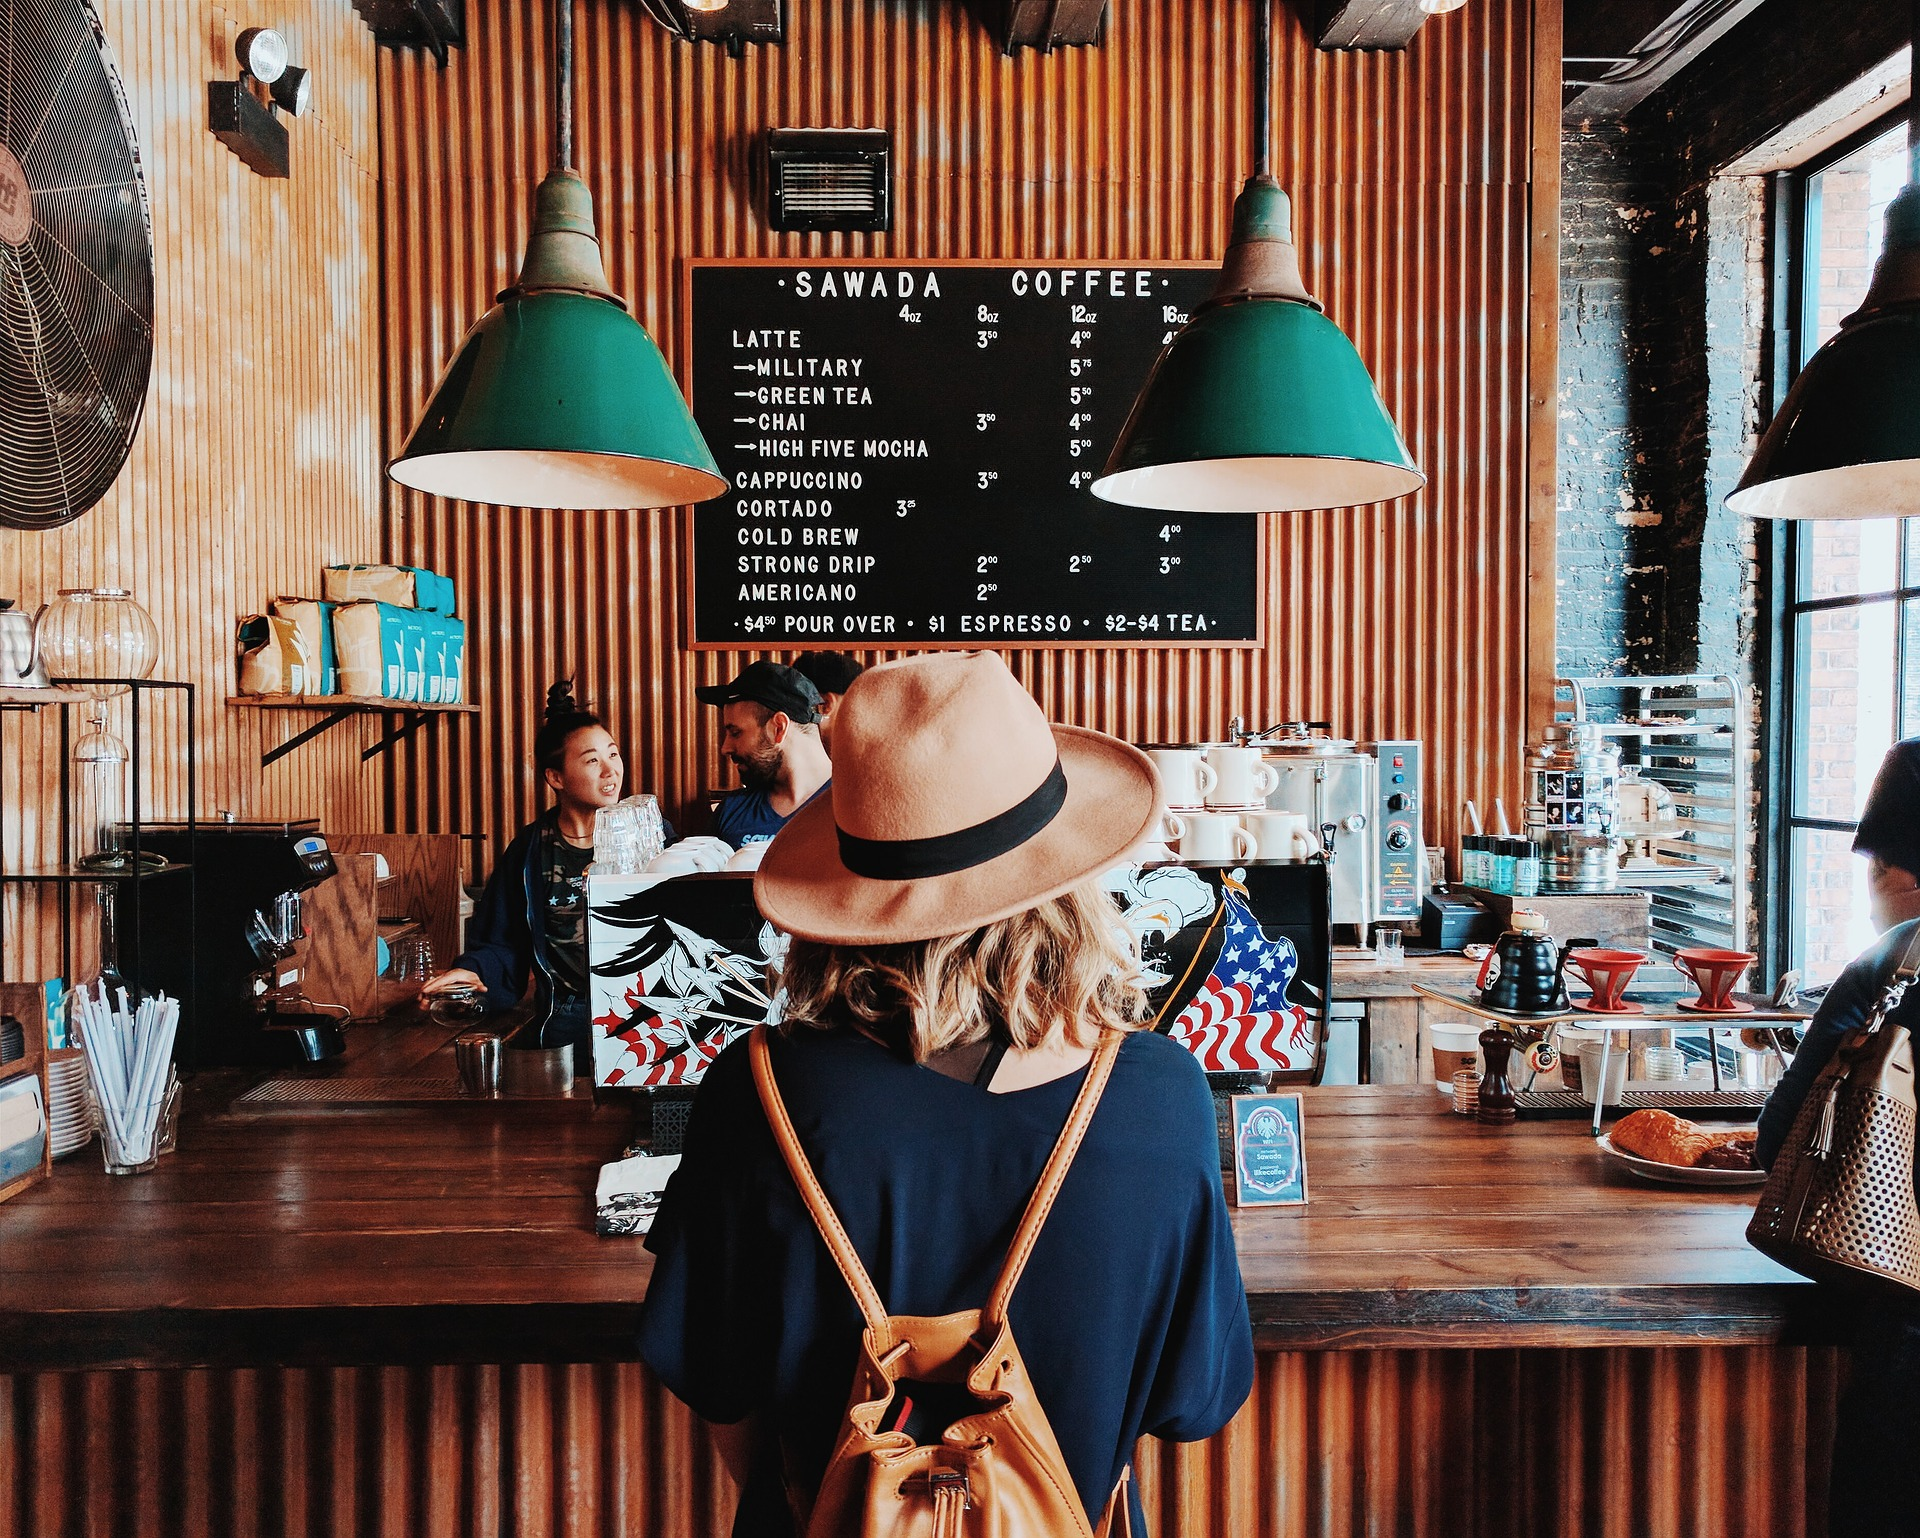 Millennial's: Underlying factors why we enjoy cafés